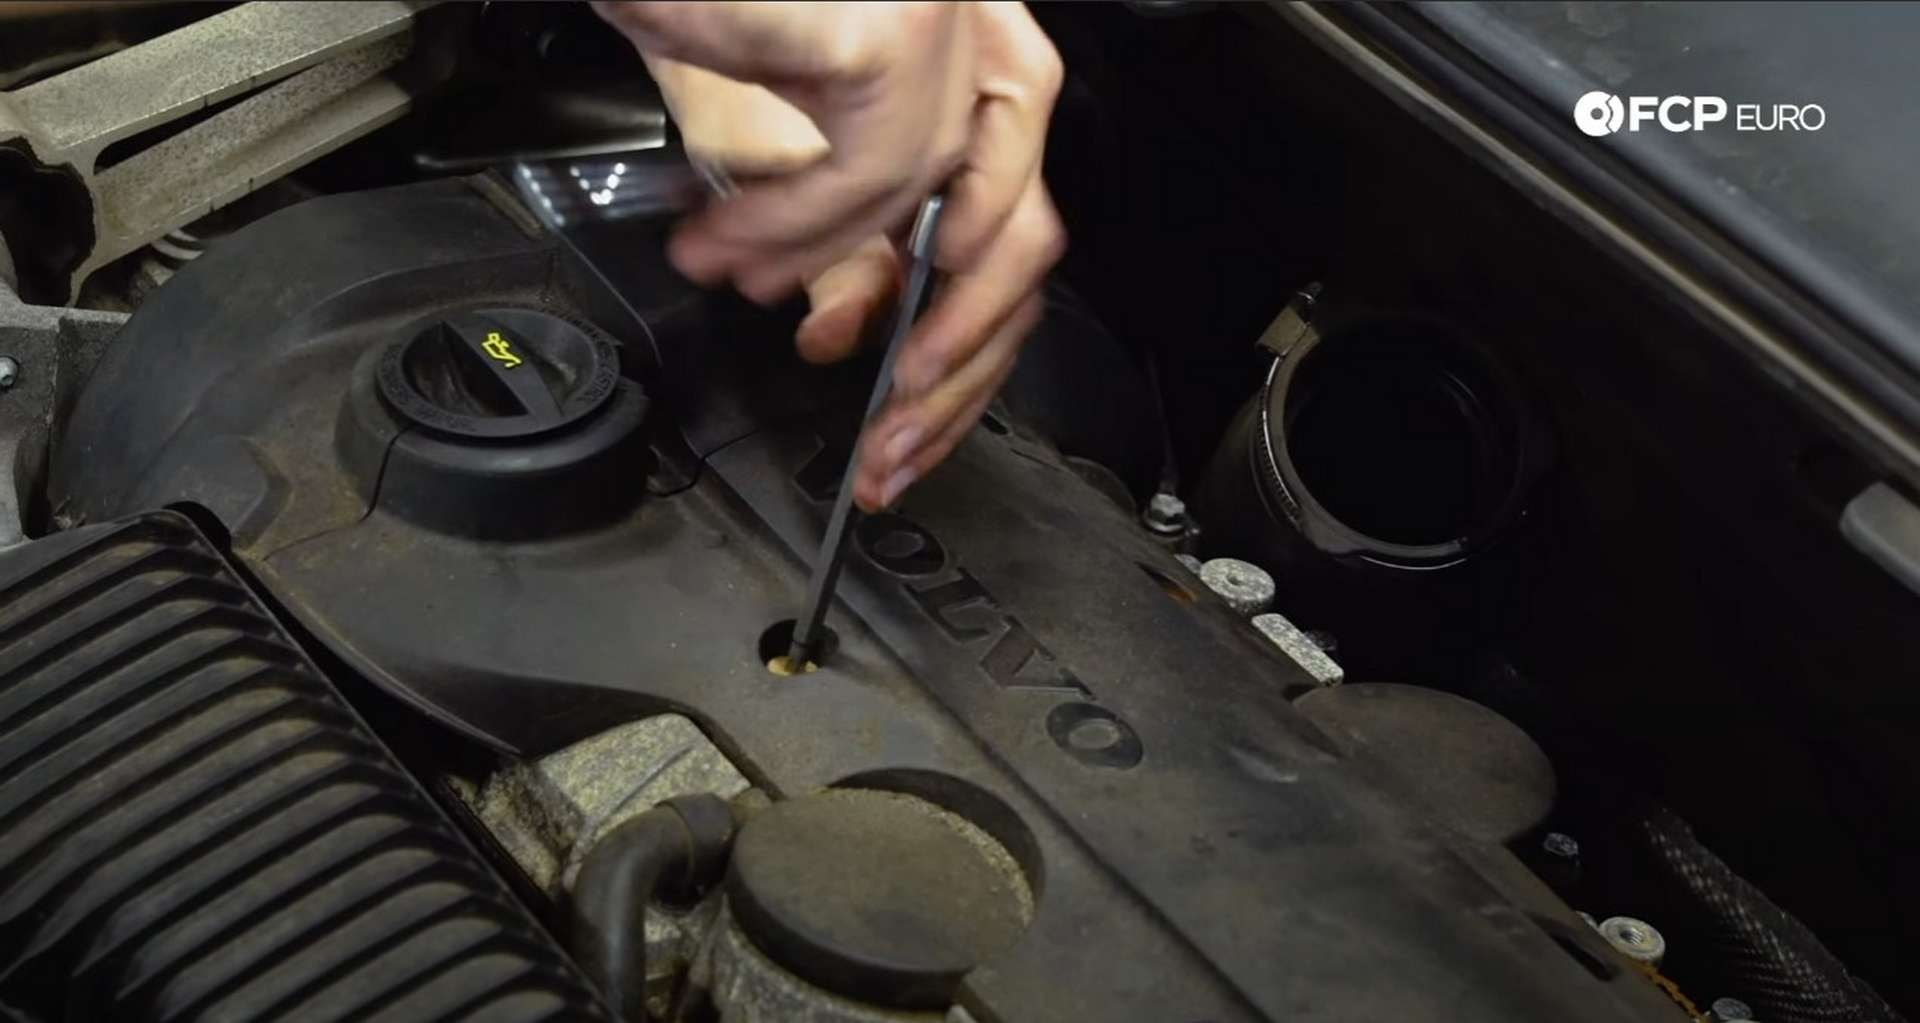 DIY Volvo Spark Plug and Ignition Coil Replacement refitting the ignition coil cover